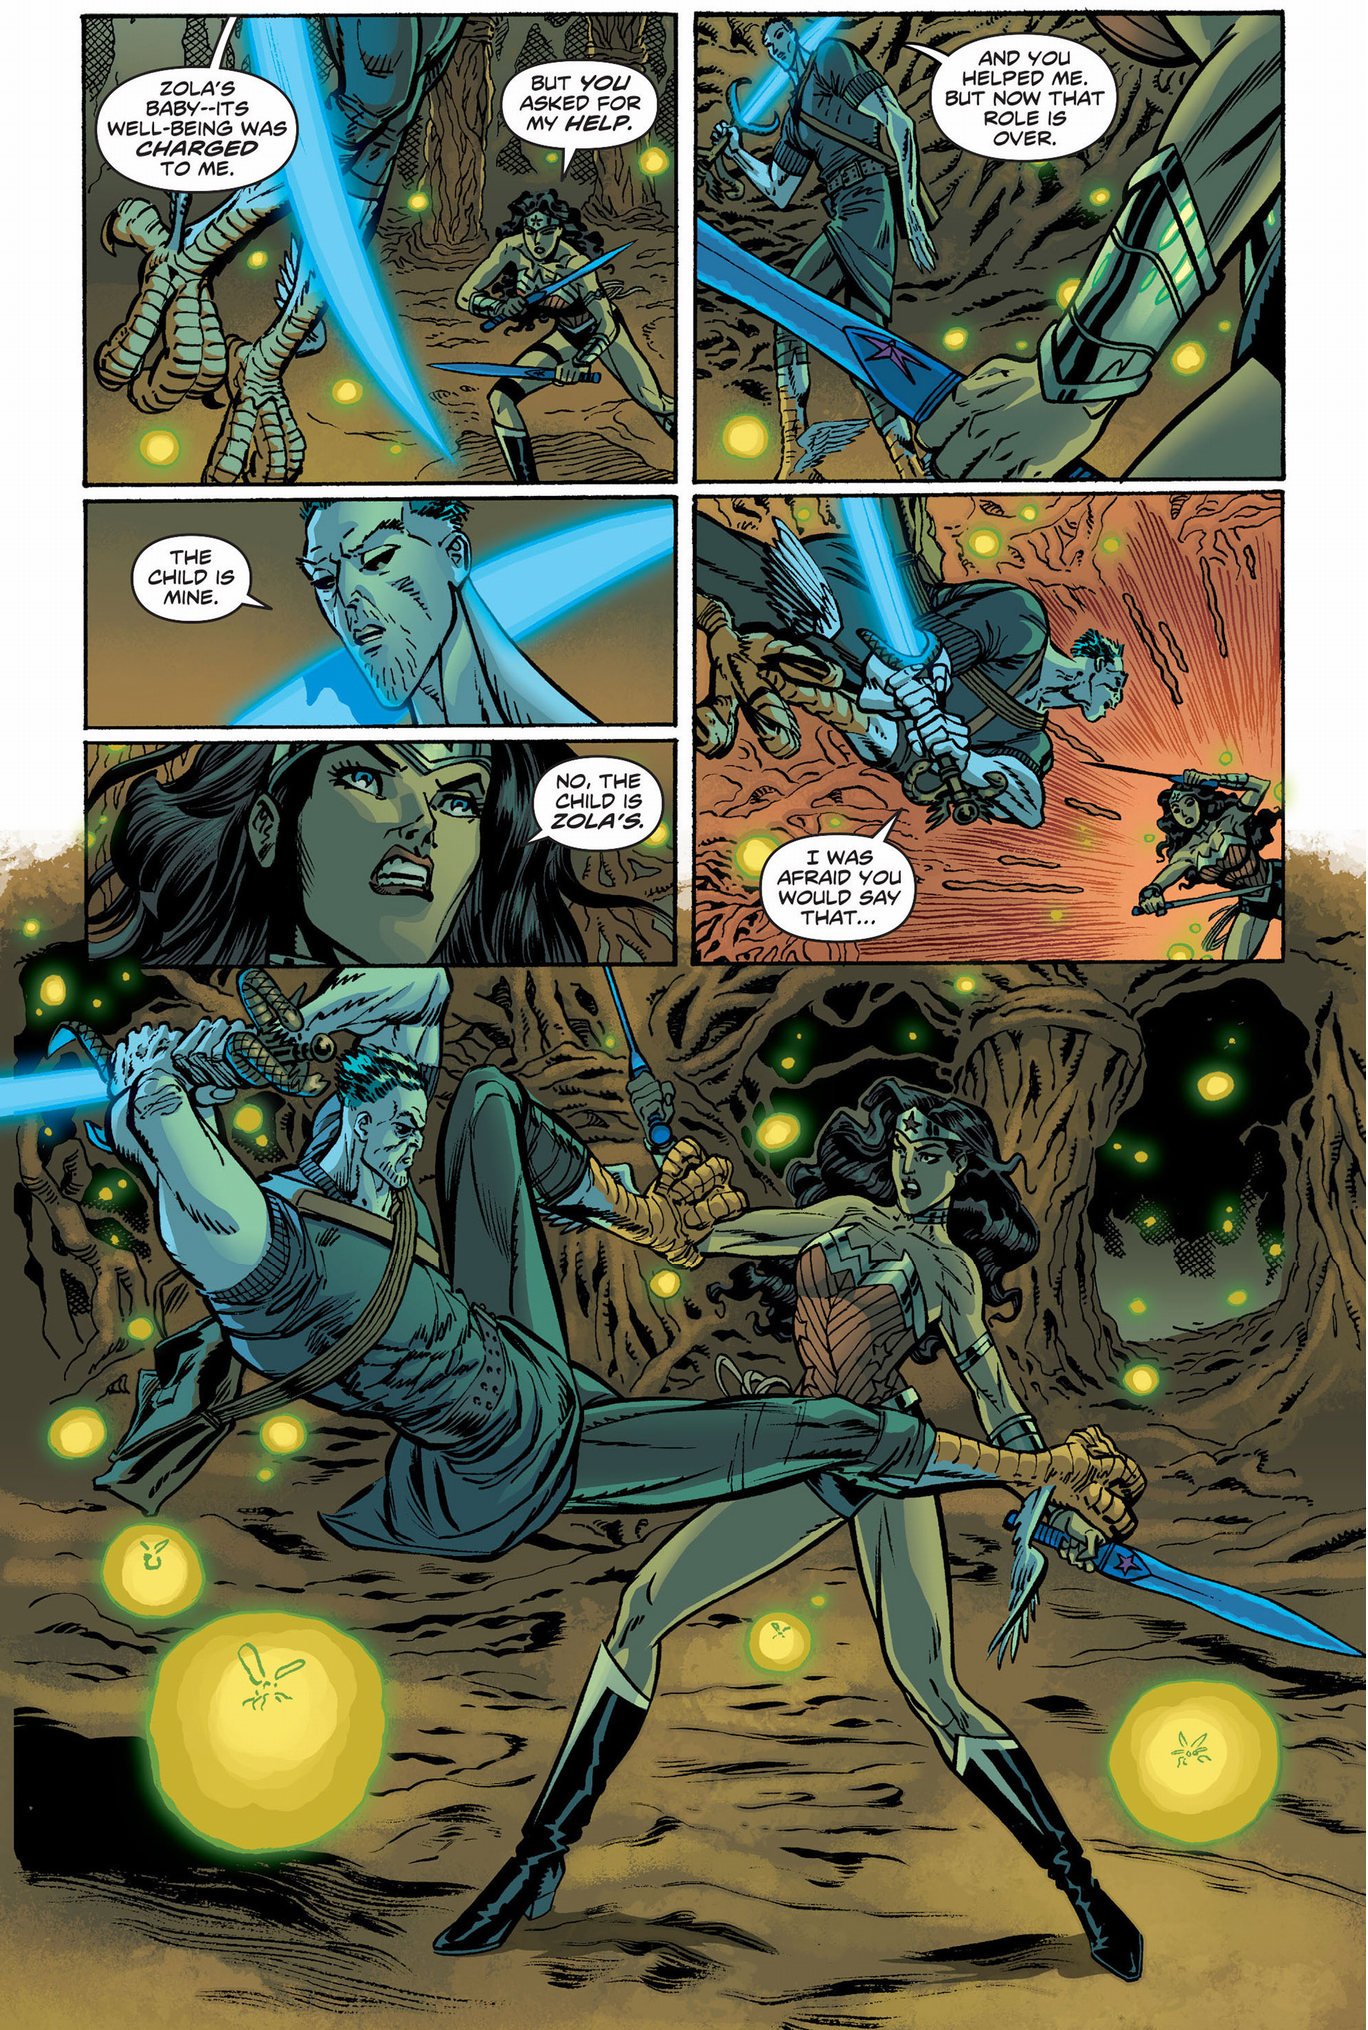 Wonder Woman VS Hermes | Comicnewbies